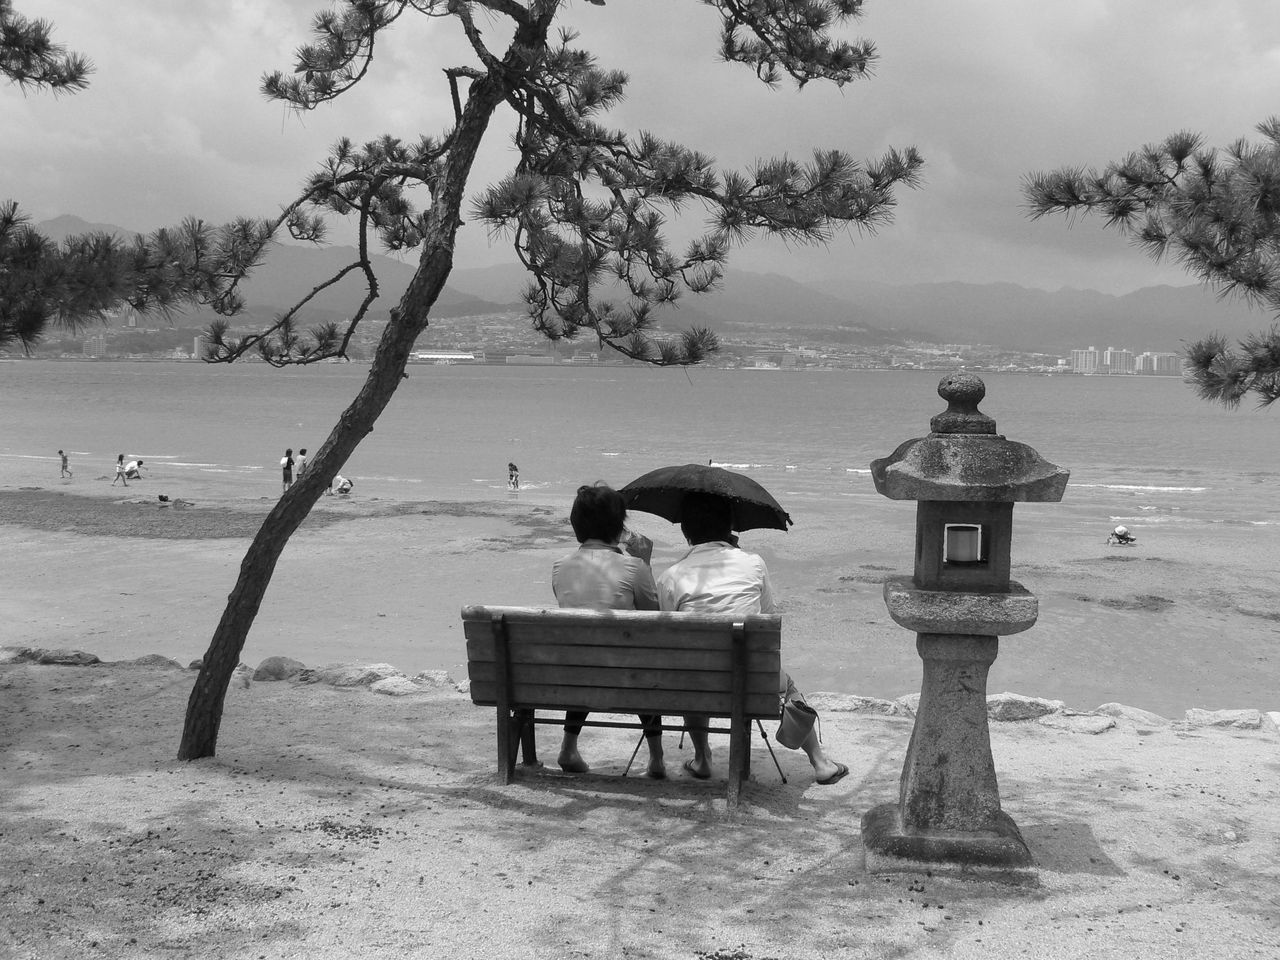 Beach Black And White Photography Couple Idyllic Pine Tree Relaxation Stone Lanterns Tranquil Scene Tranquility Travel Destinations Tree Umbrella Water